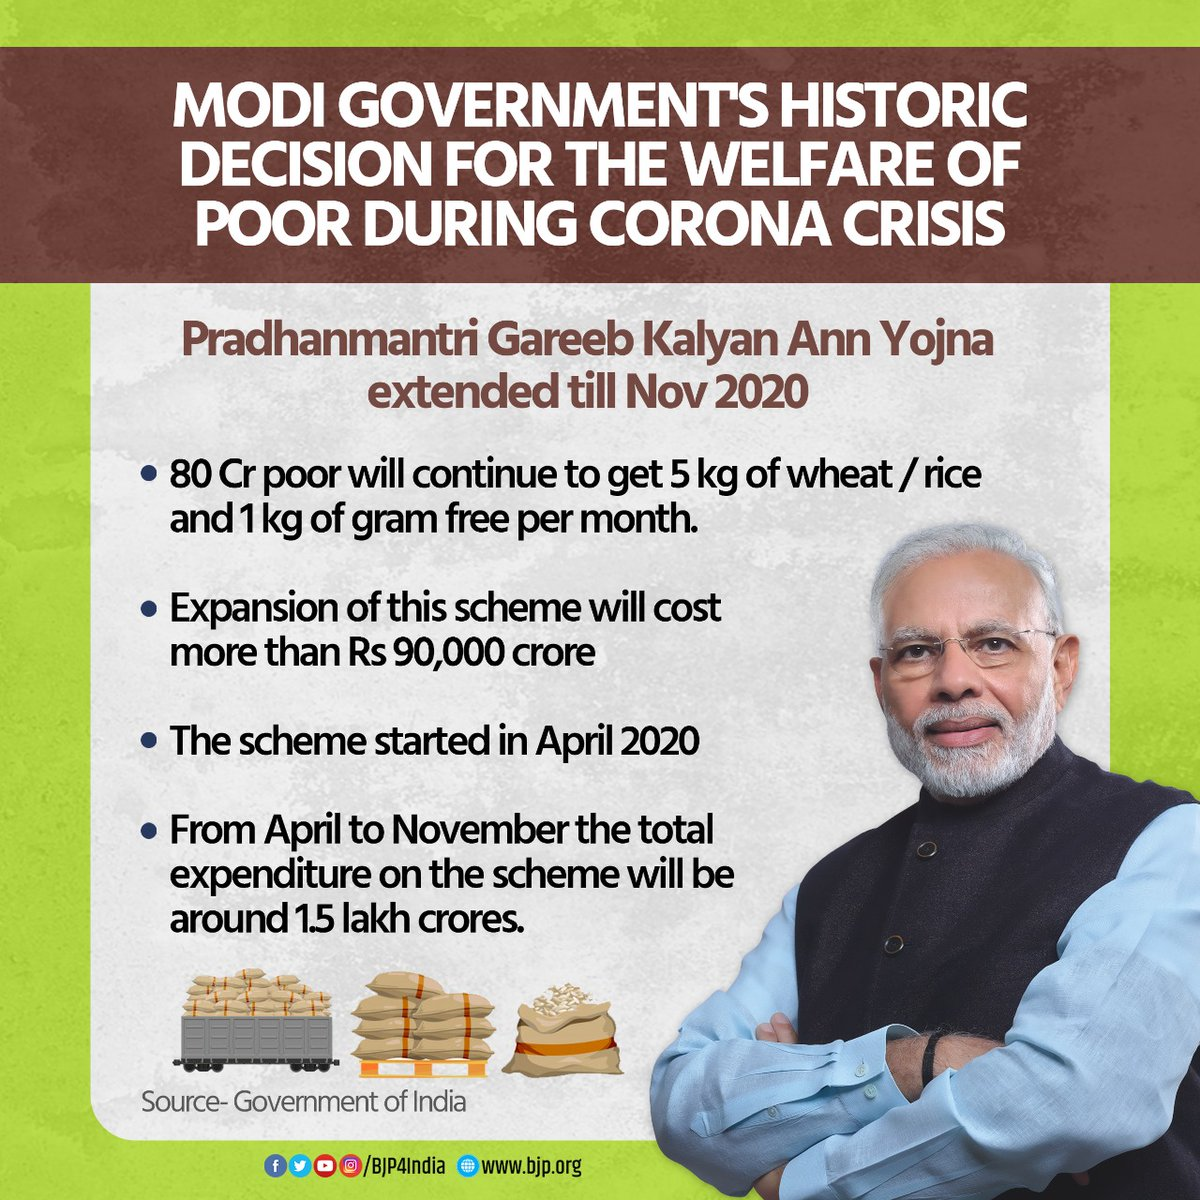 Modi government is standing beside the poor during #COVID crisis.   The government has extended PM Gareeb Kalyan Anna Yojana till November 2020, providing 80 crore people free ration at an expenditure of Rs 90,000 crore.  #pmmodi #bjp4india #AmitShah #modisarkaar2 https://t.co/bkhutddLkd